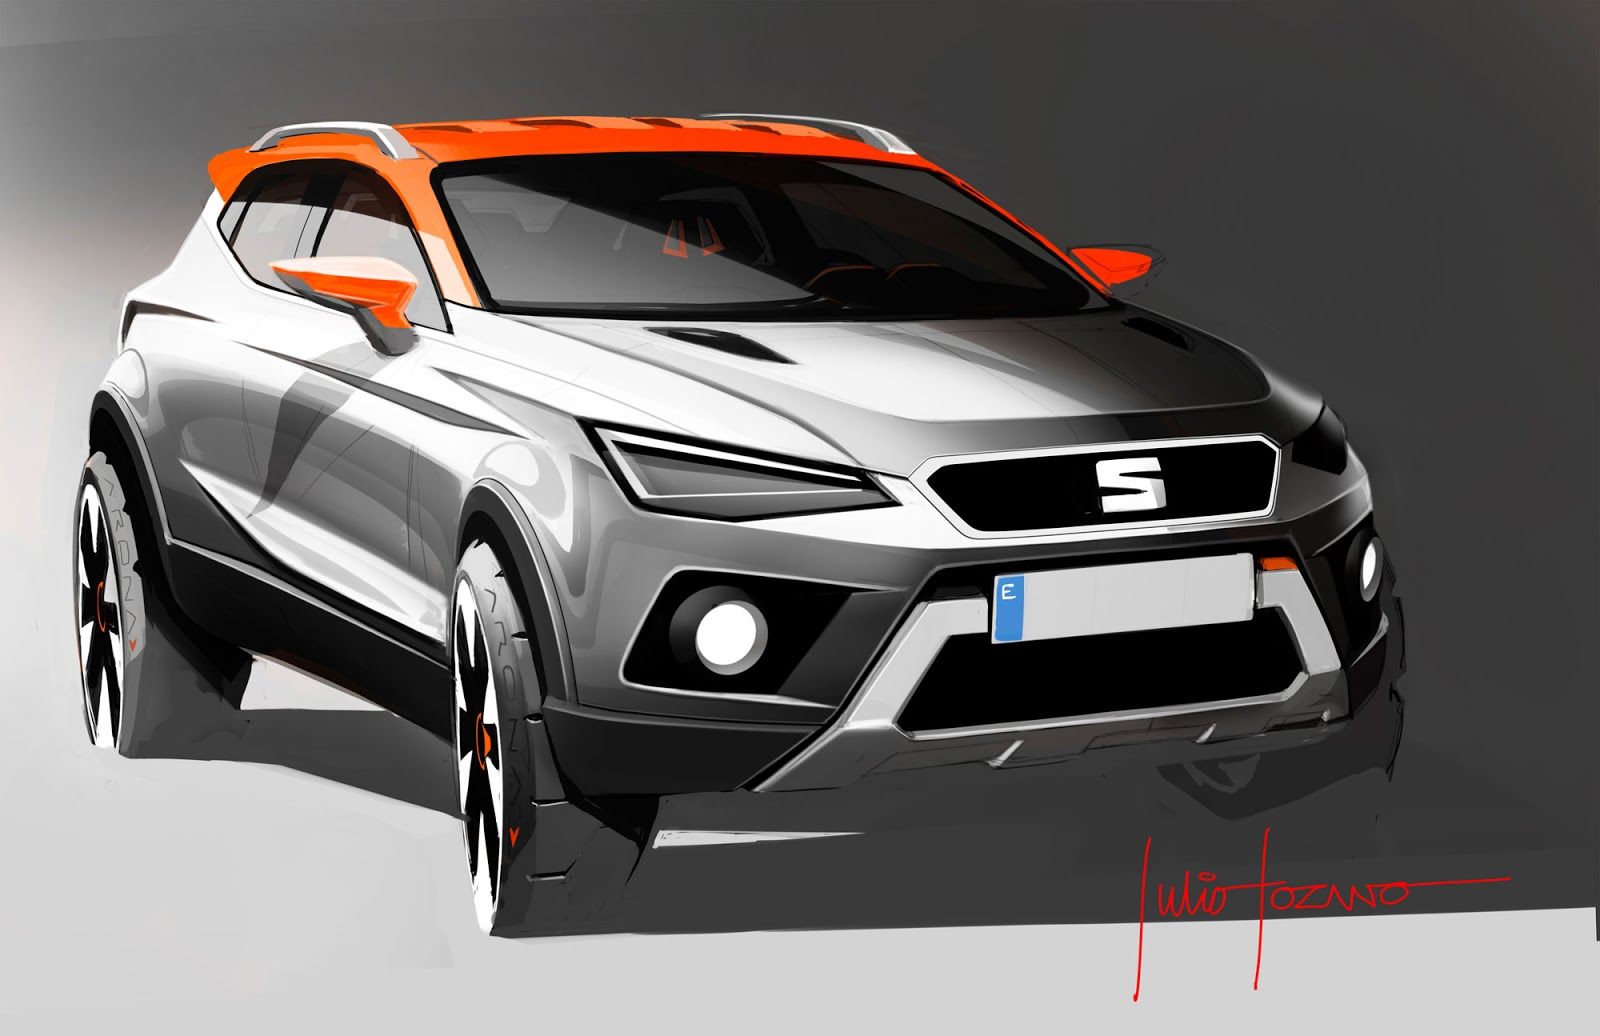 Seat Arona sketch by Julio Lozano showing the front grille